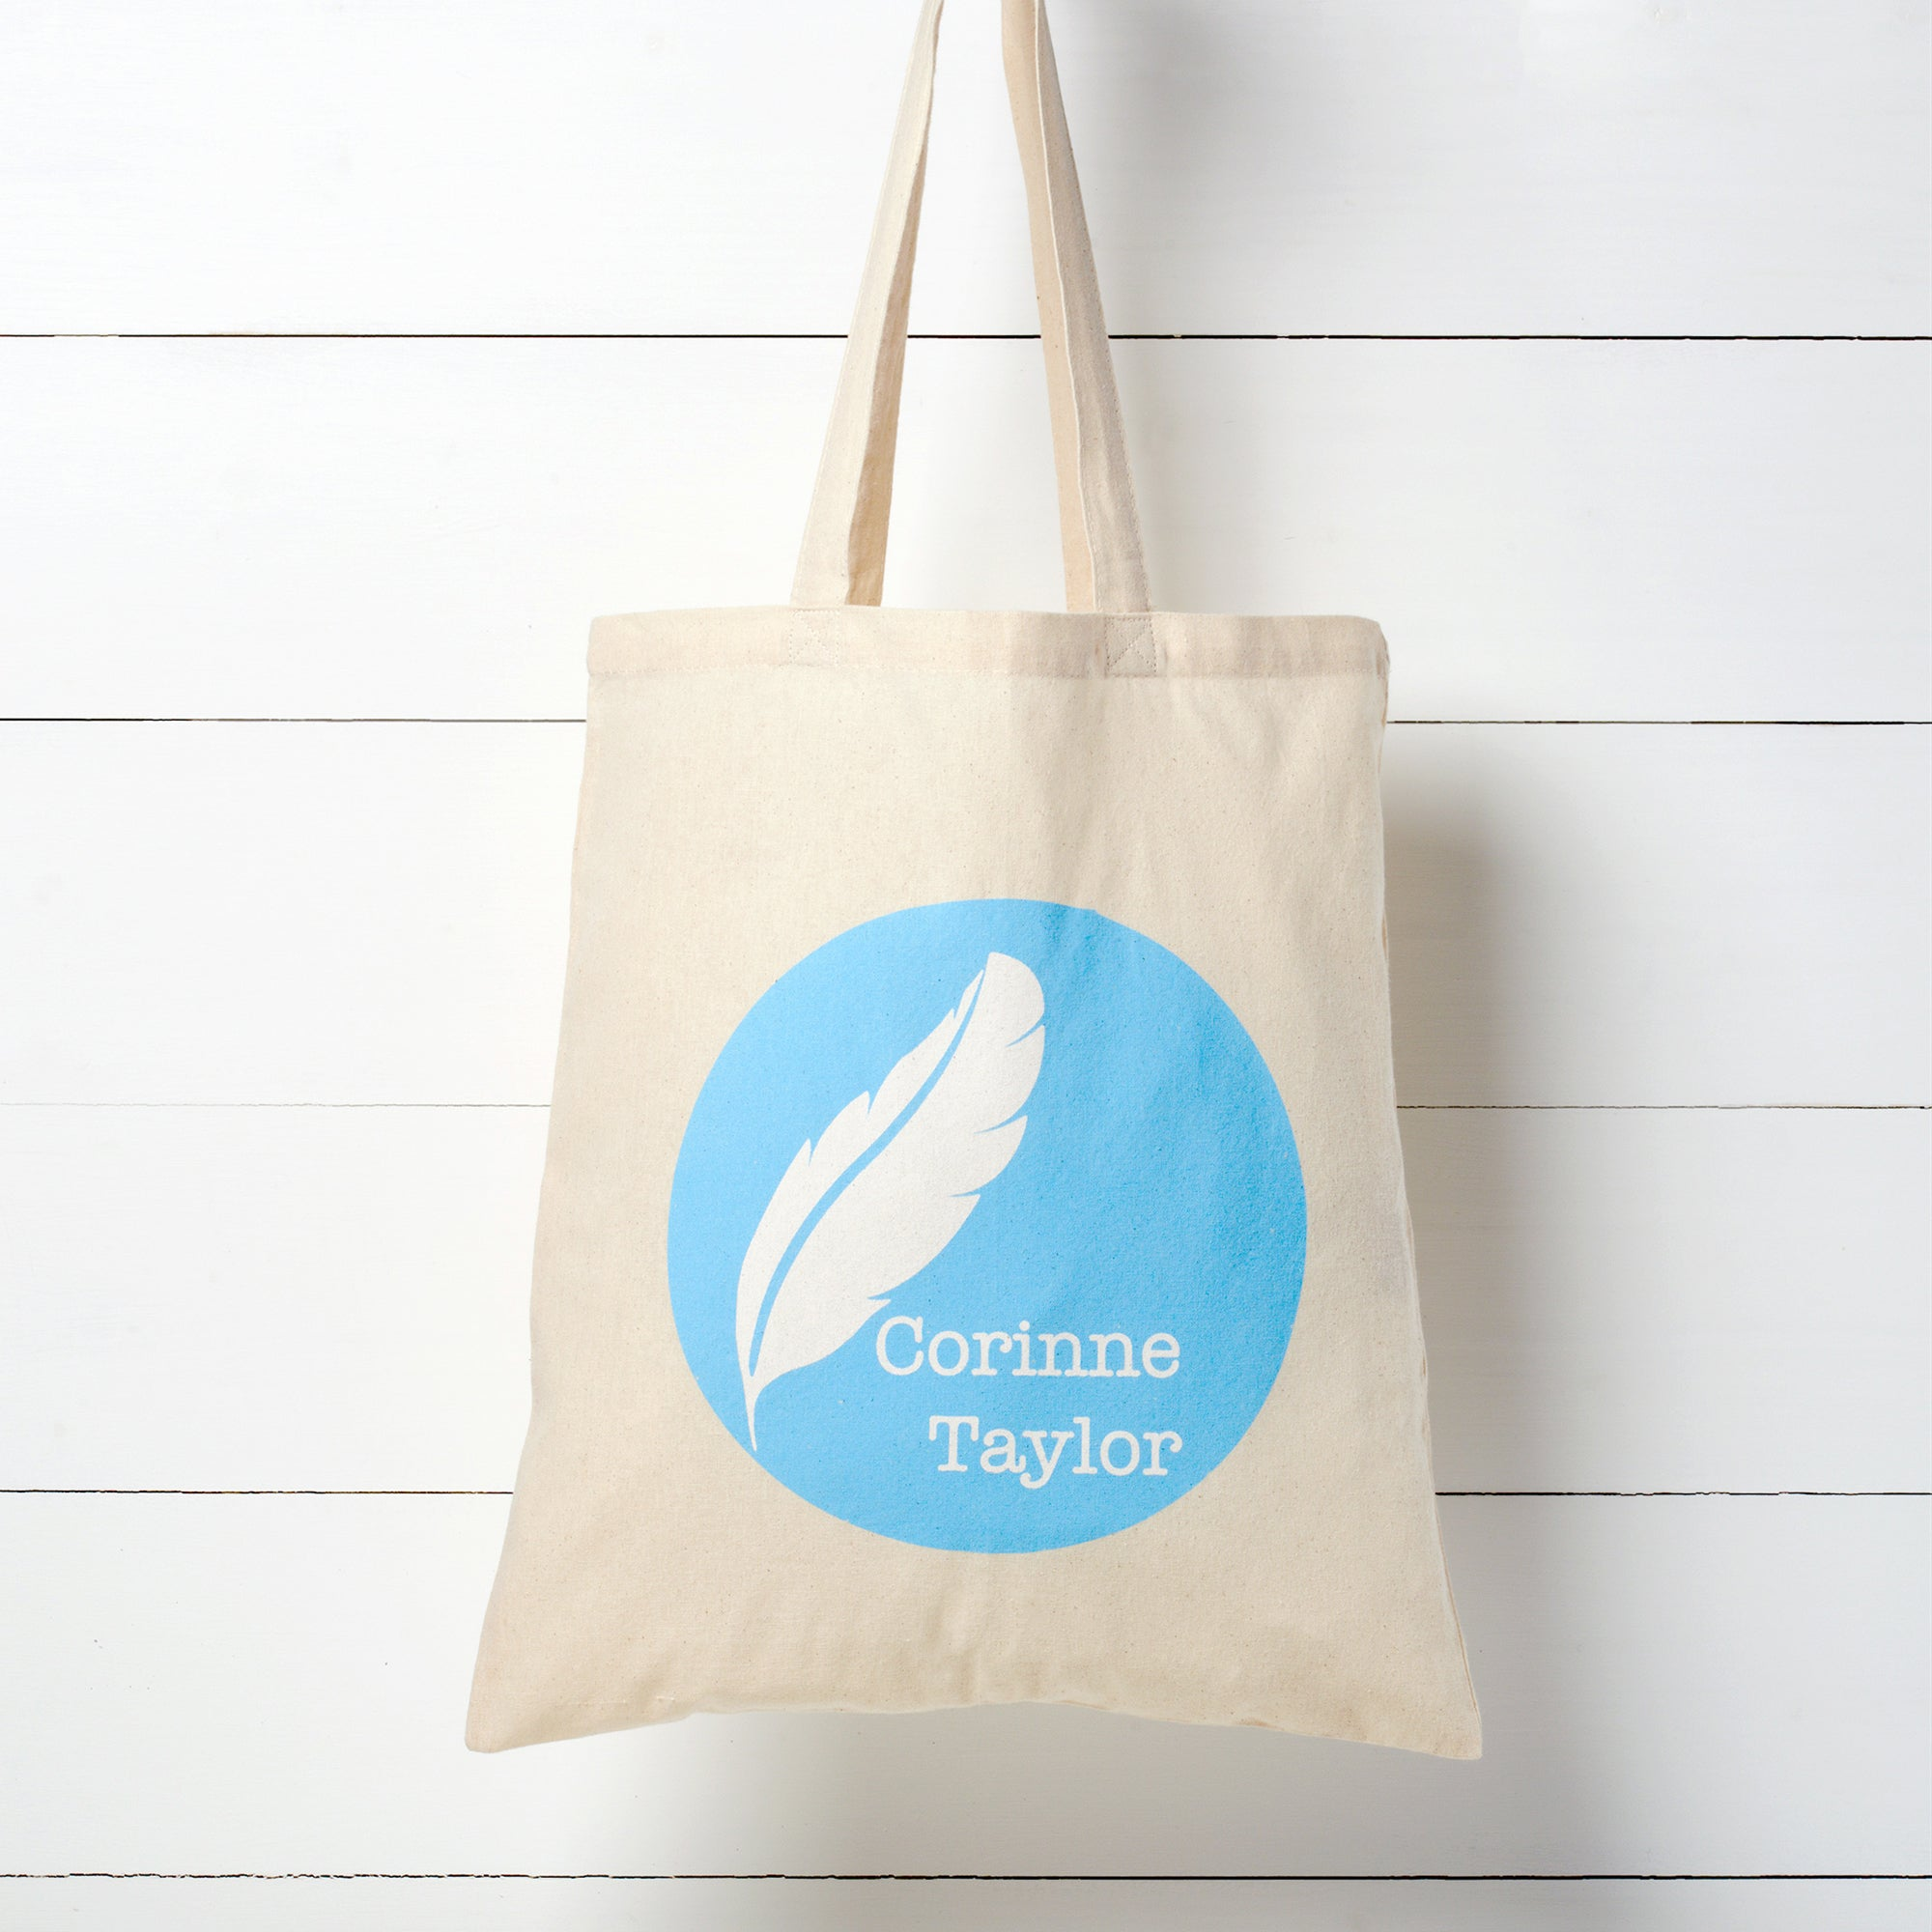 Natural Cotton Tote Bag by Corinne Taylor. Our lightweight 100% natural, eco-friendly tote bags are made from sustainable cotton and are fantastic versatile bags which are great for all uses.